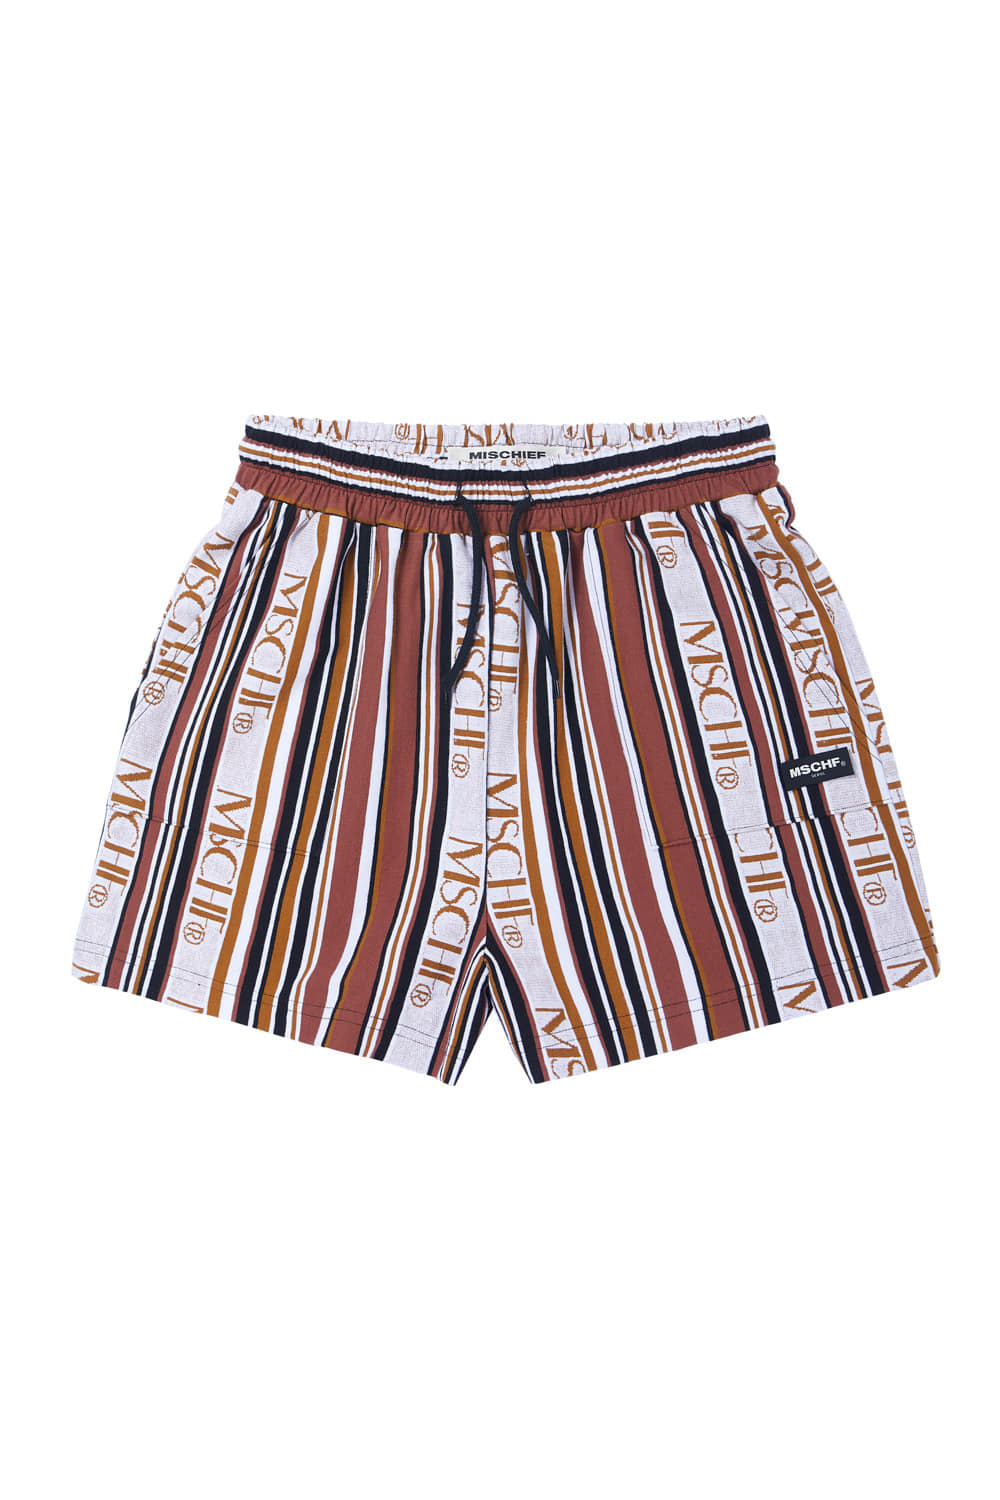 STRIPED LOGO TRAINING SHORTS_brown multi